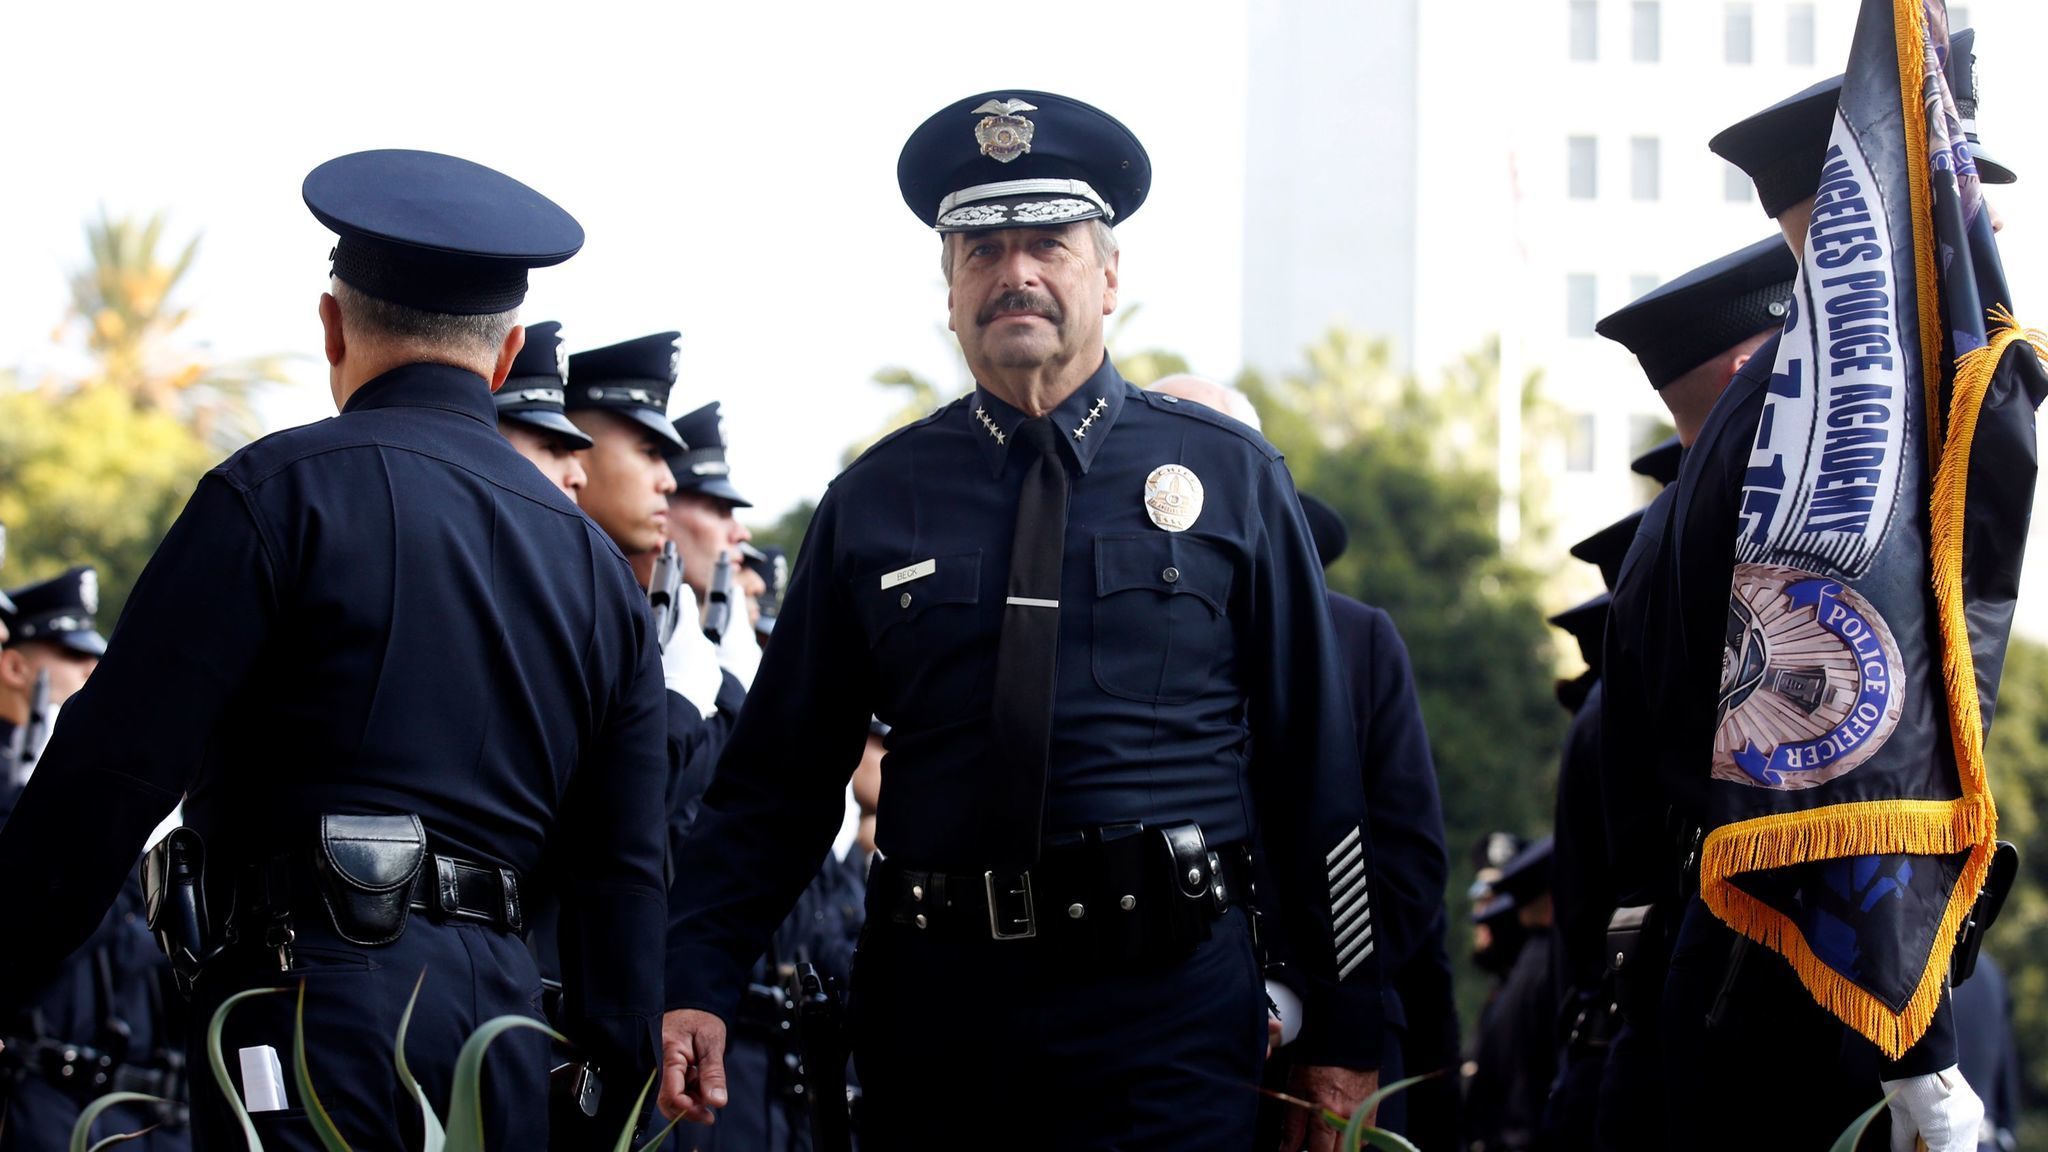 LAPD Chief Charlie Beck appears at a 2015 graduation ceremony for new LAPD officers.